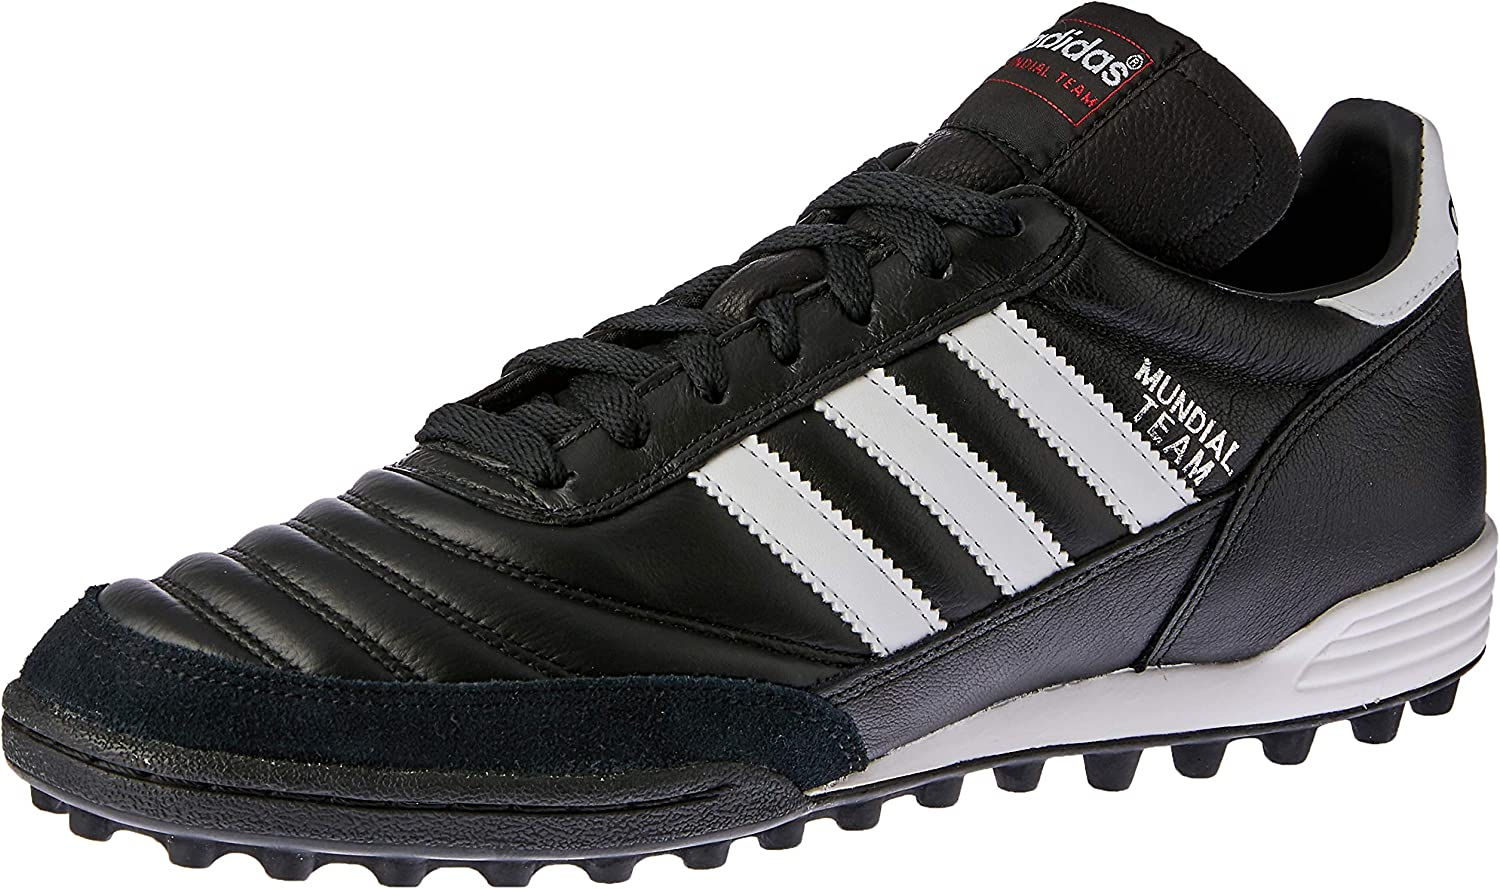 Hacer deporte contar hasta reputación  Amazon.com | adidas Performance Mundial Team Turf Soccer Cleat | Soccer